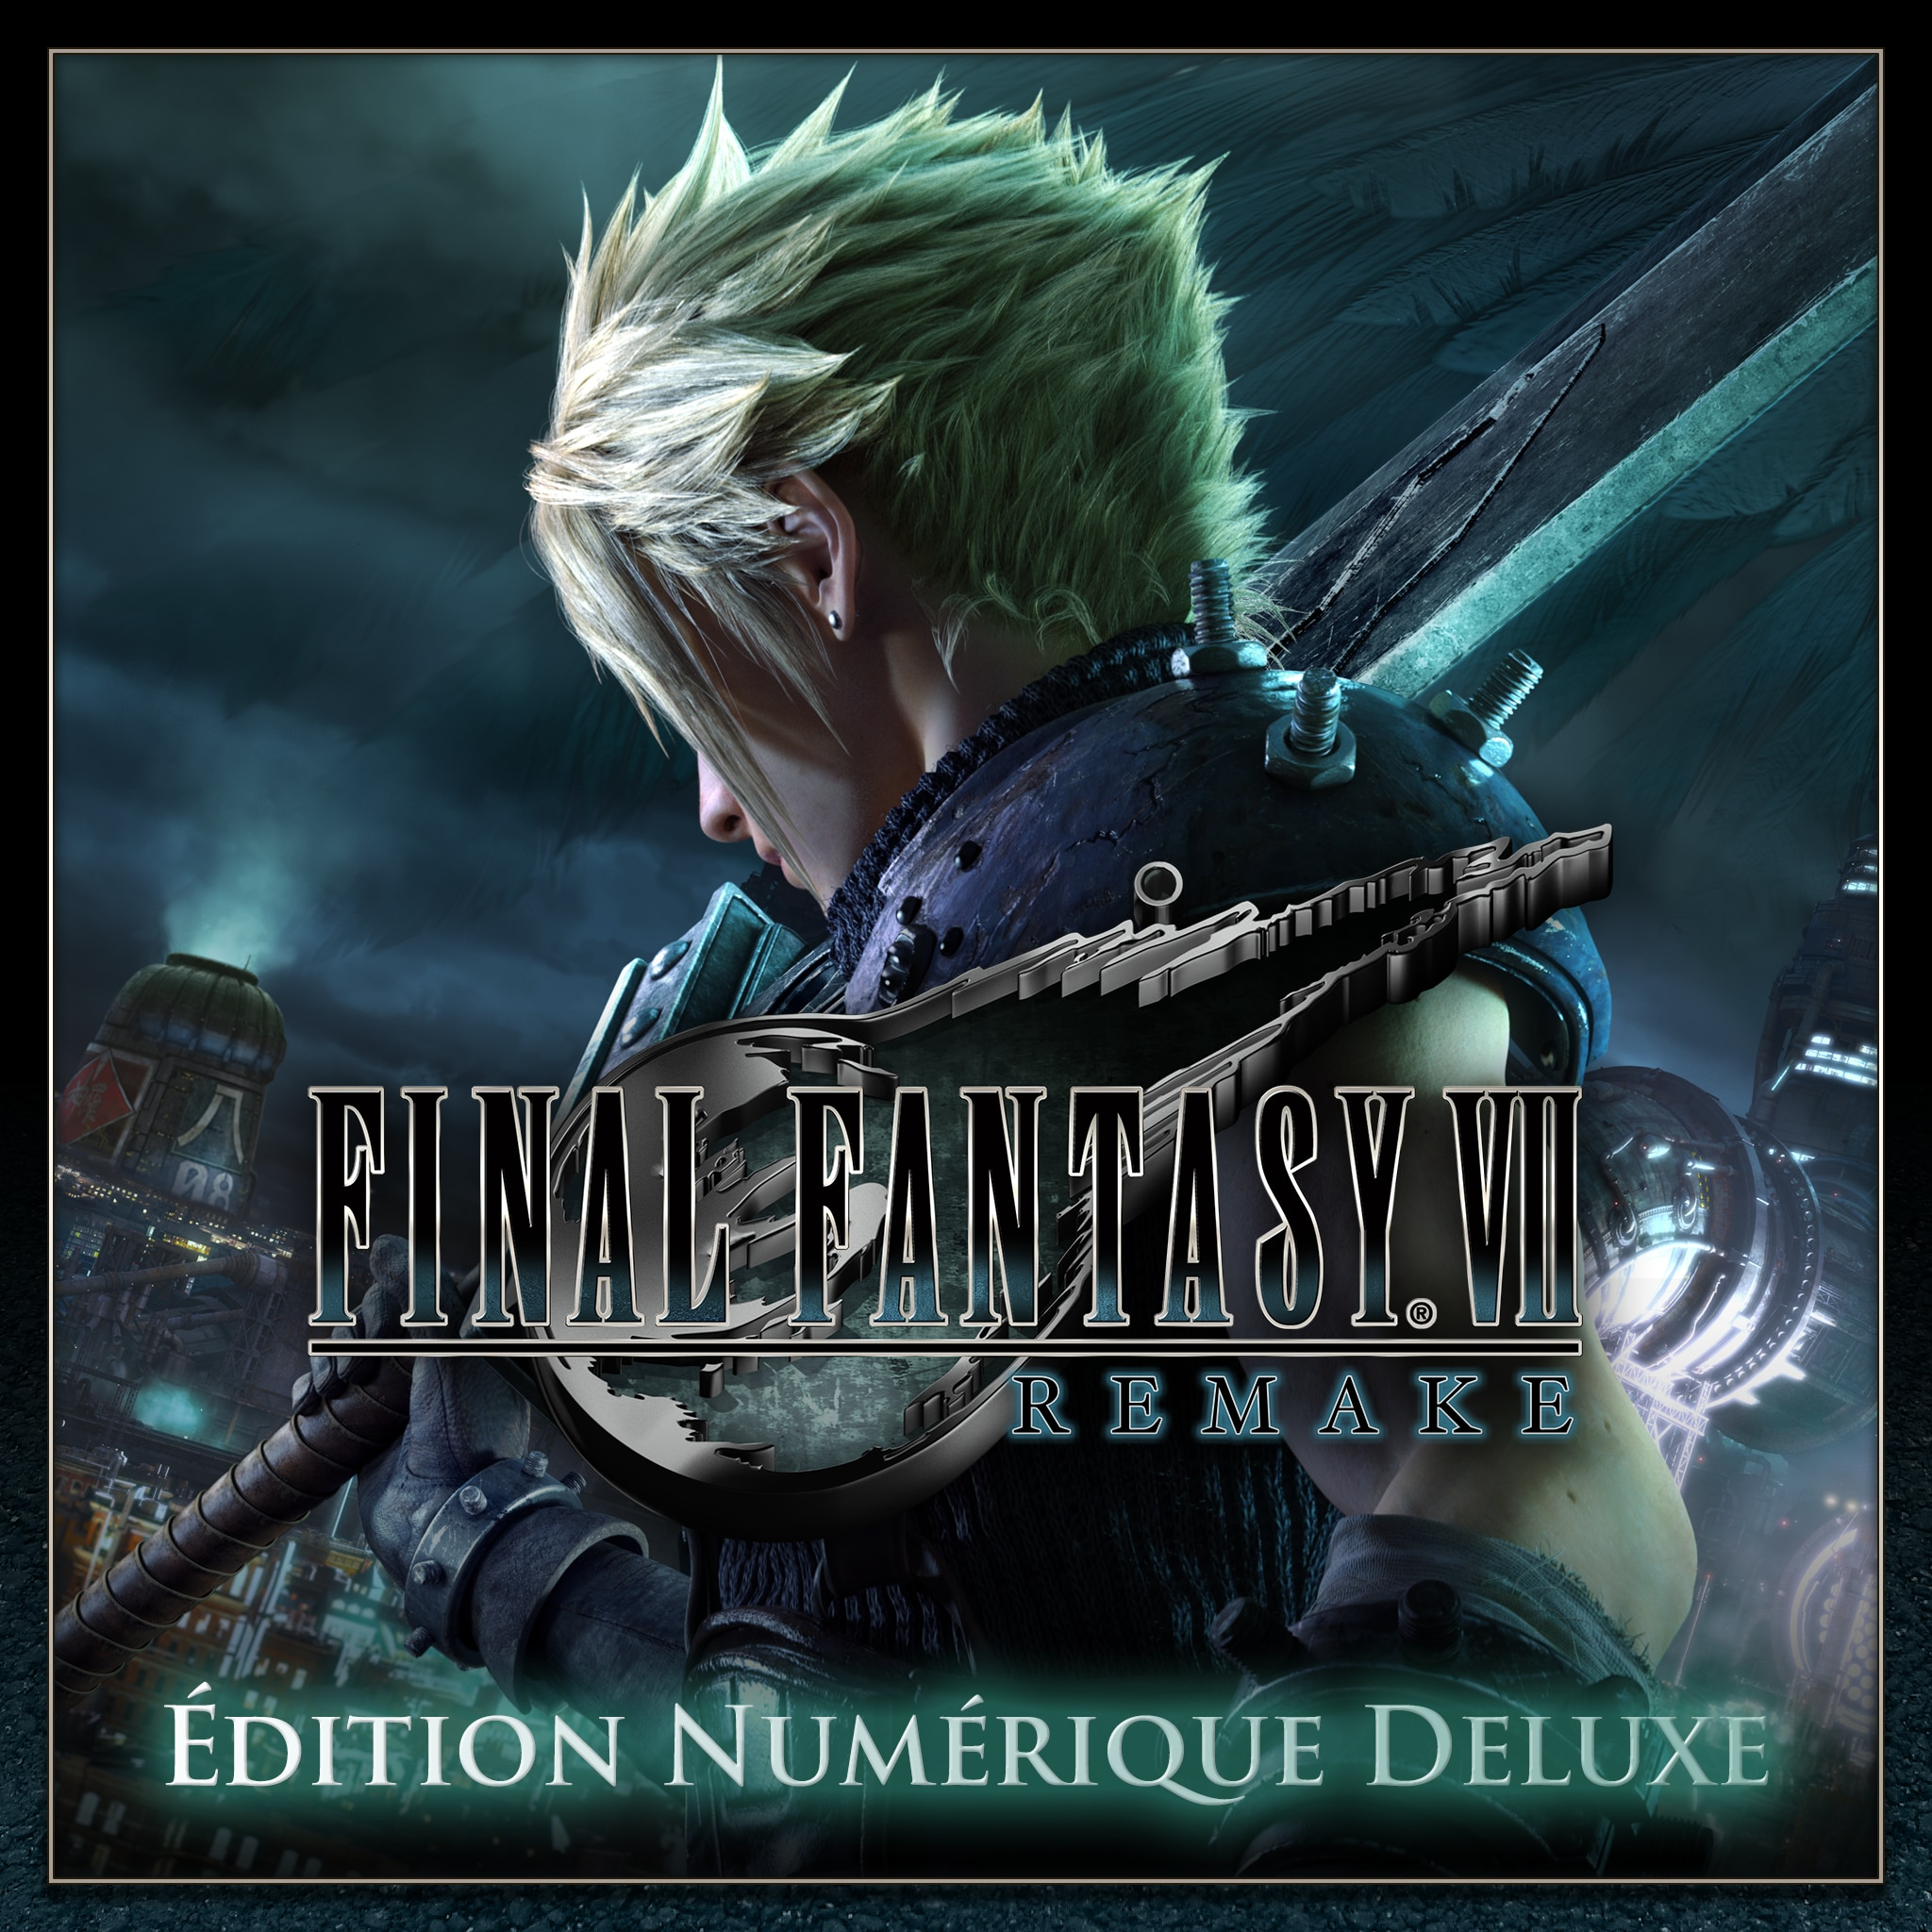 FINAL FANTASY VII REMAKE Digital Deluxe Edition